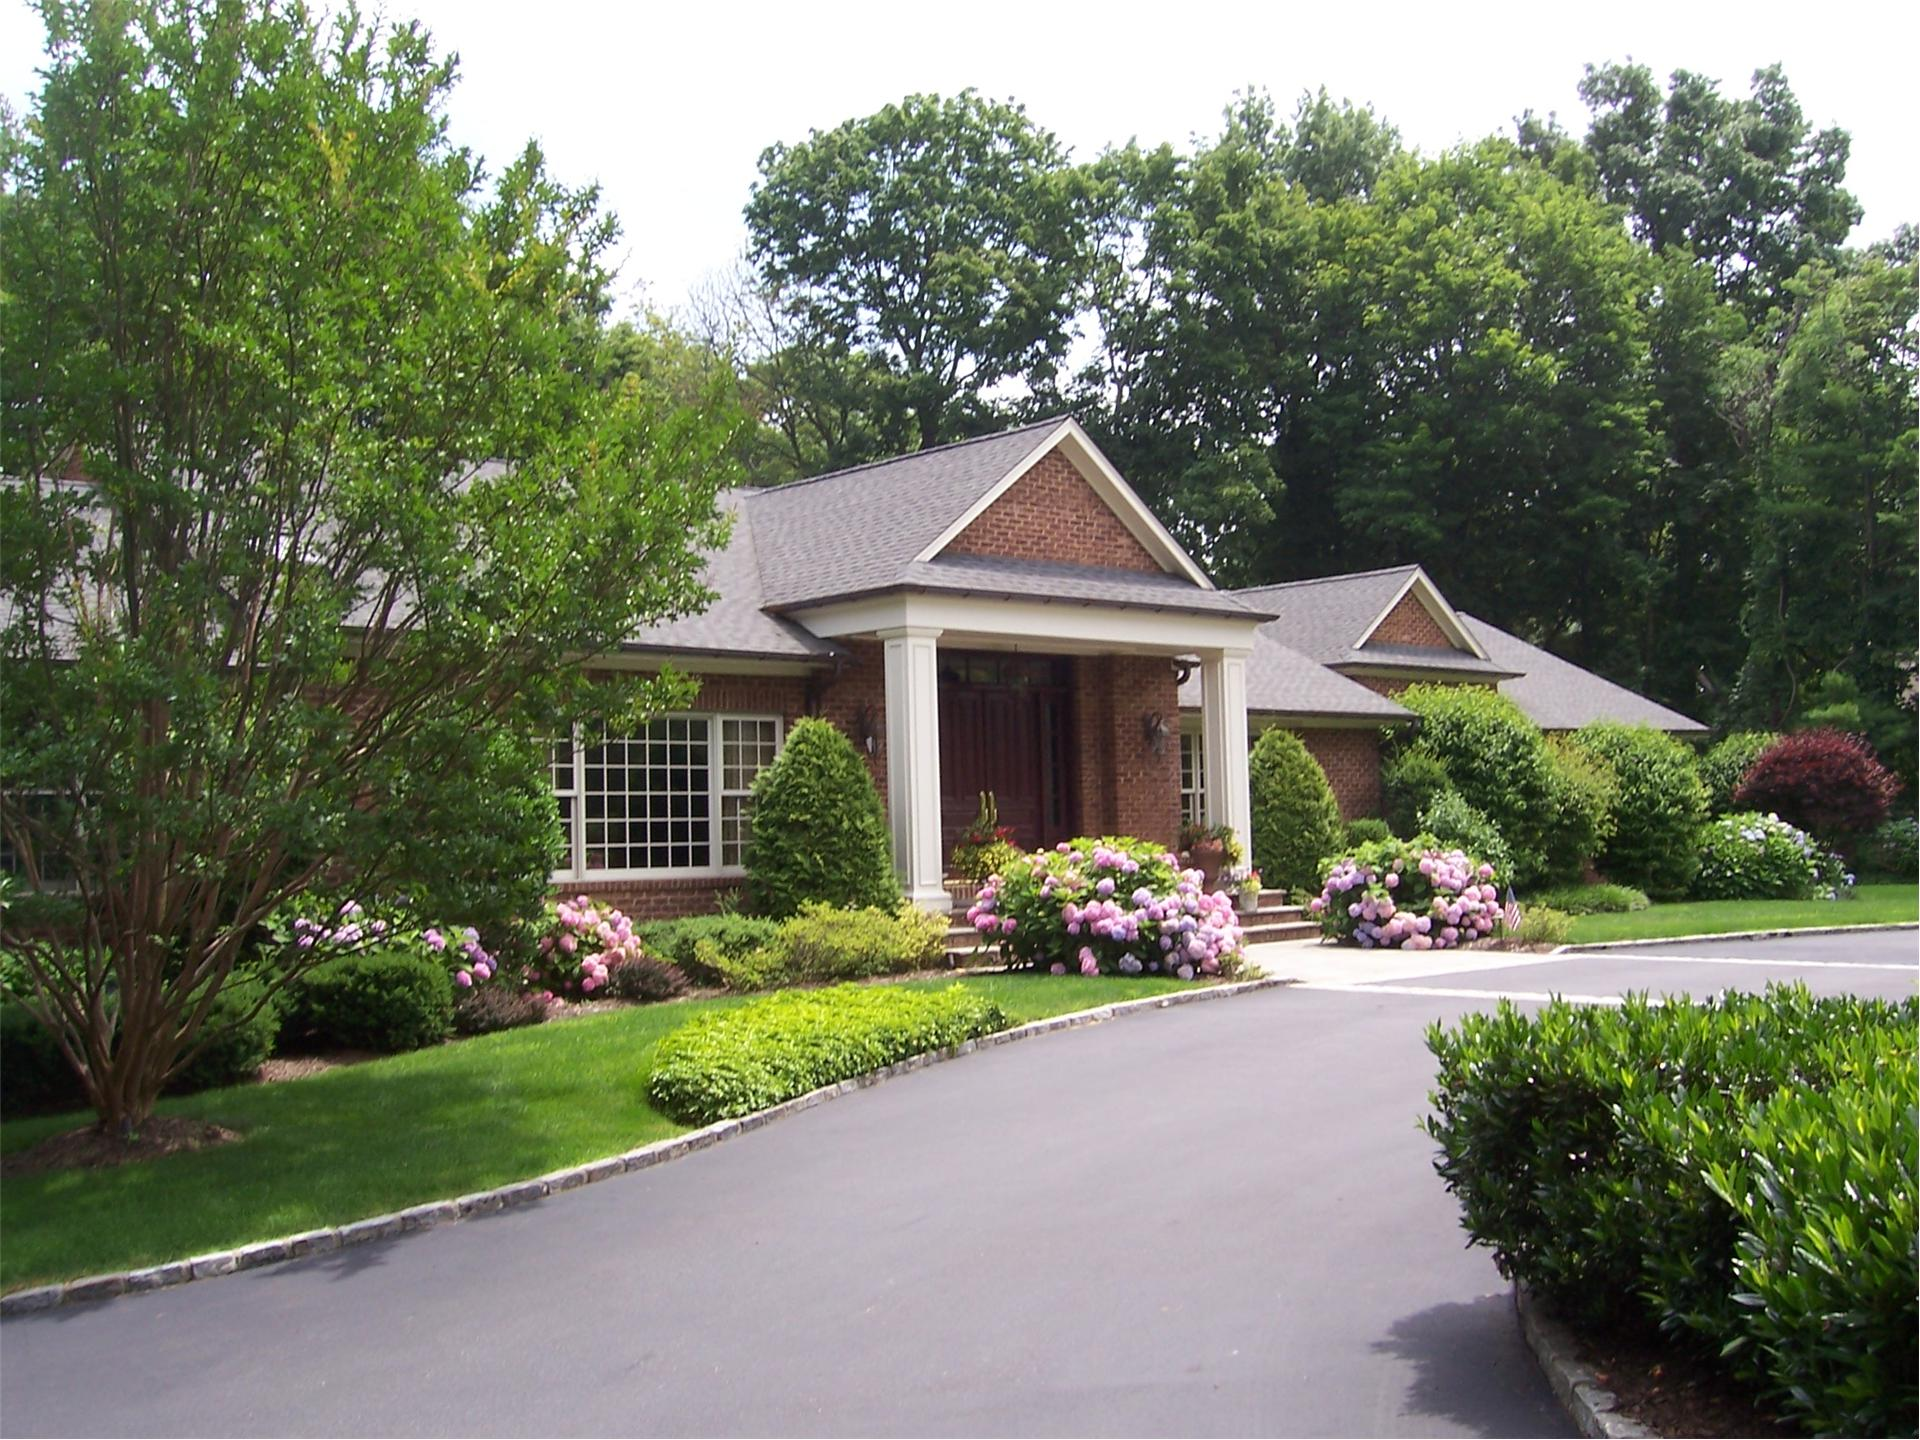 Single Family for Sale at 3 Sloanes Beach Rd Sands Point, New York 11050 United States